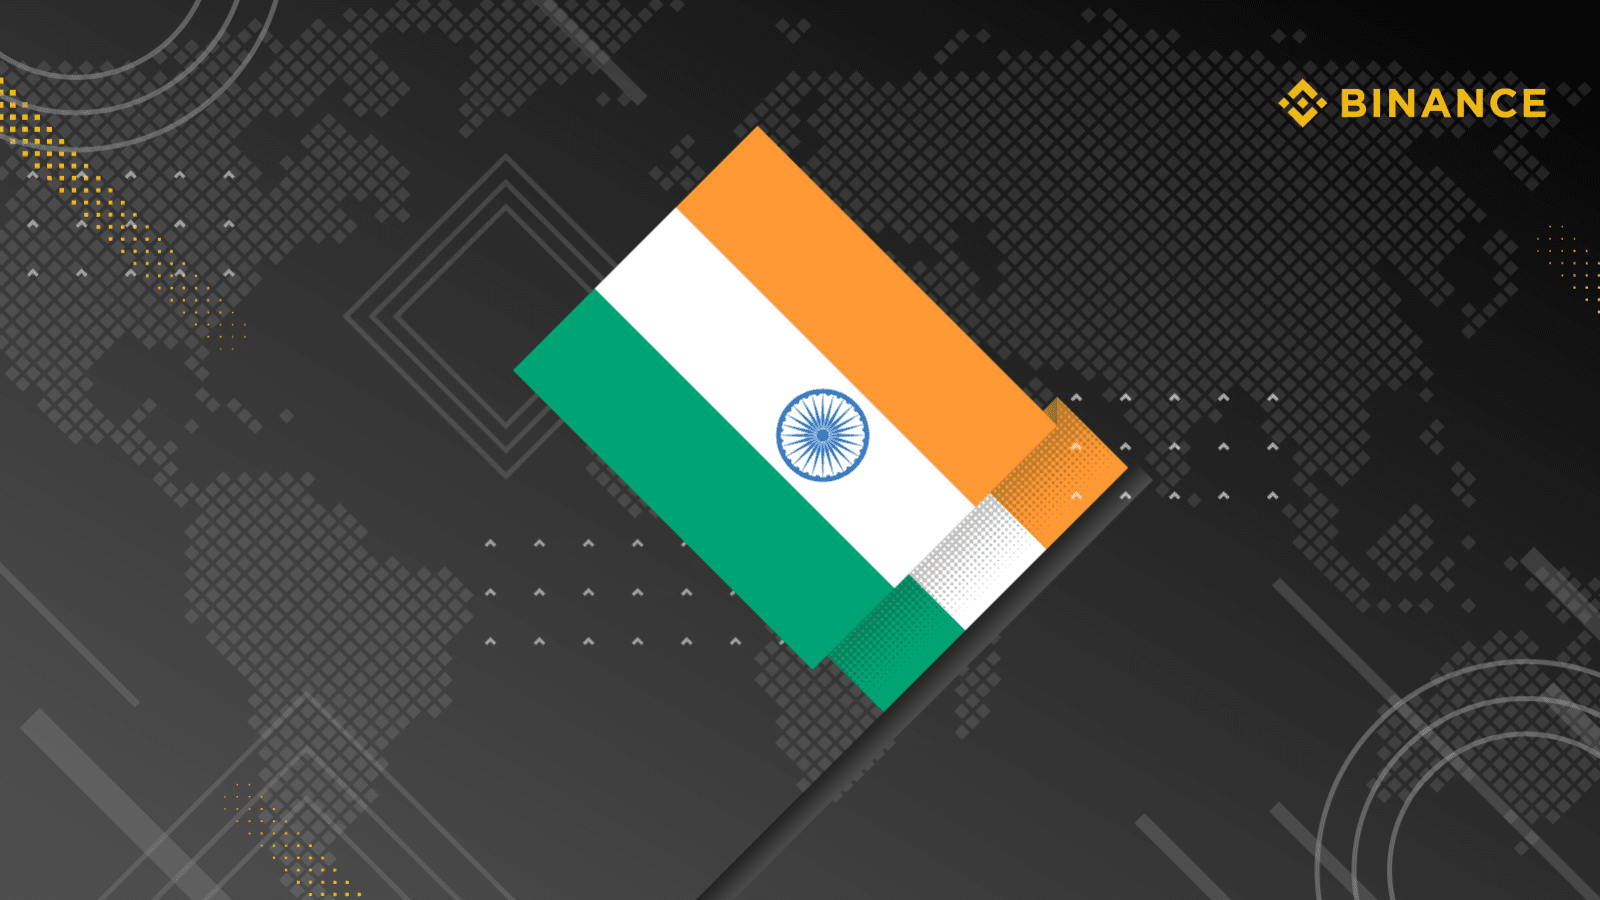 What India Stands to Gain from Supporting the Blockchain and Crypto Industry | Binance Blogon October 8, 2021 at 6:39 am